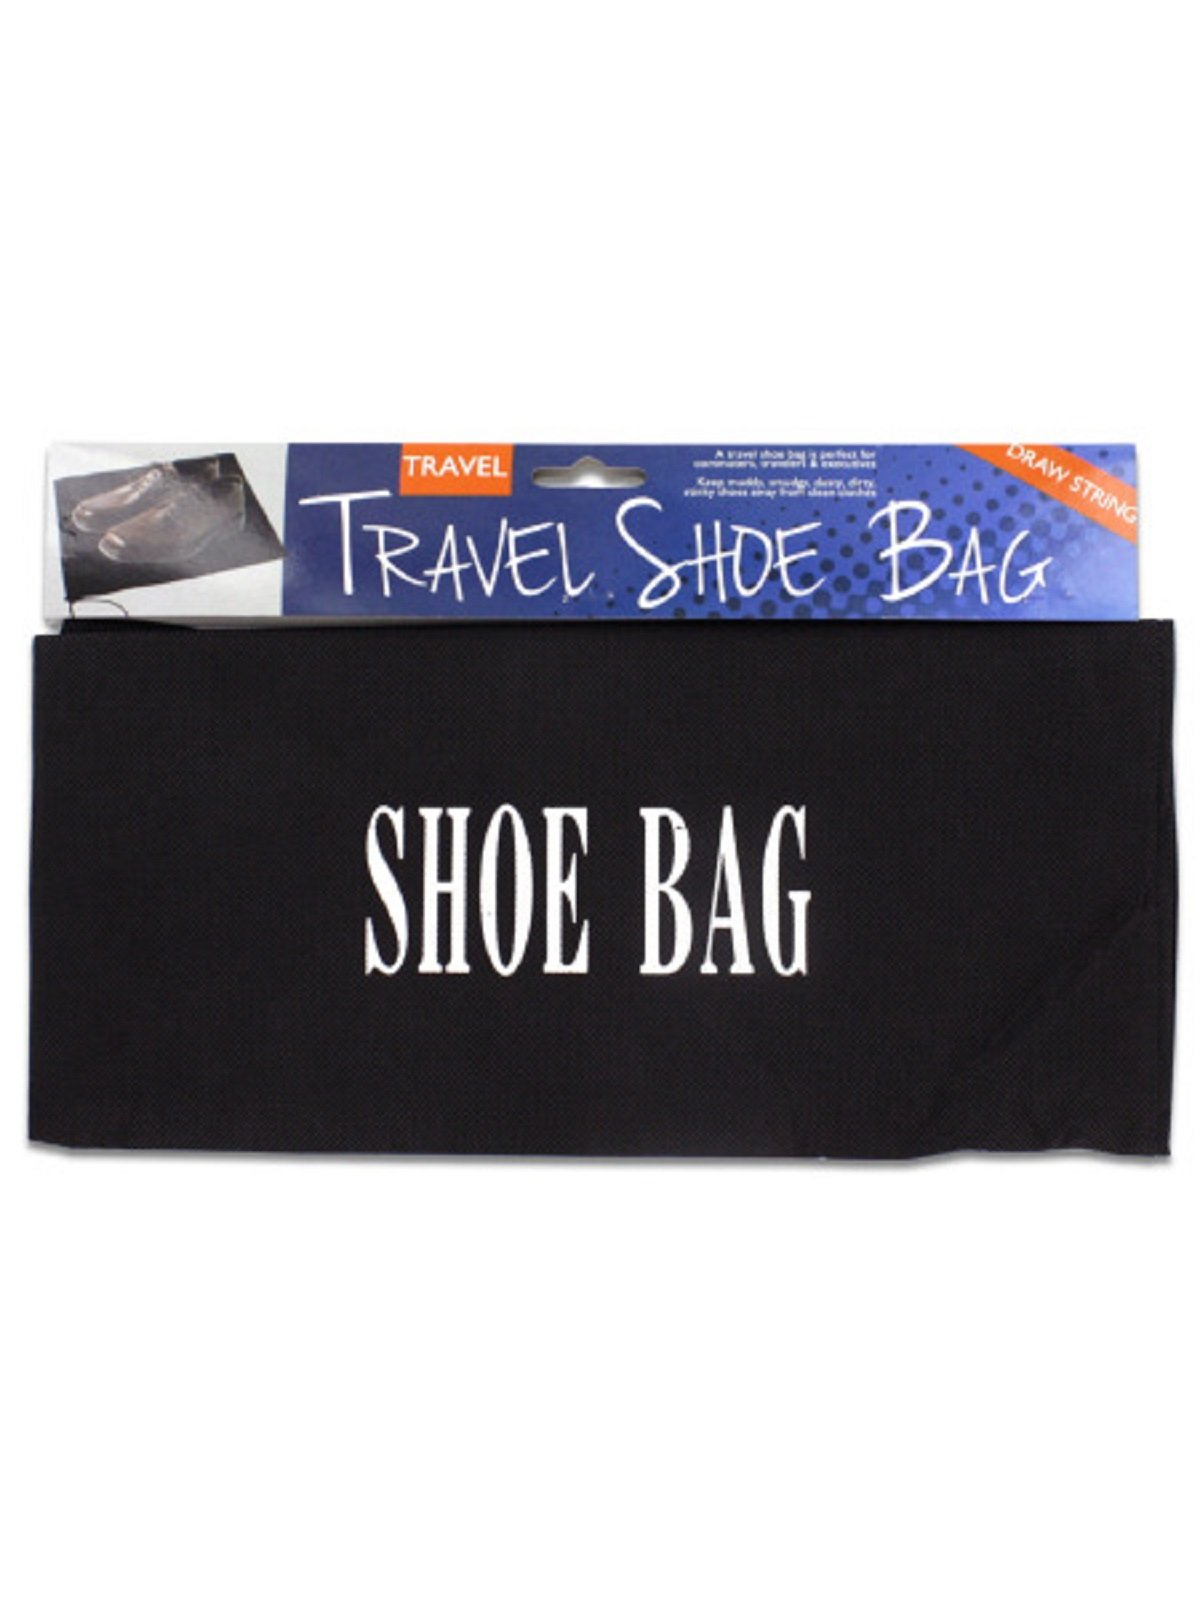 Travel Shoe Bag, Case of 96 by bulk buys